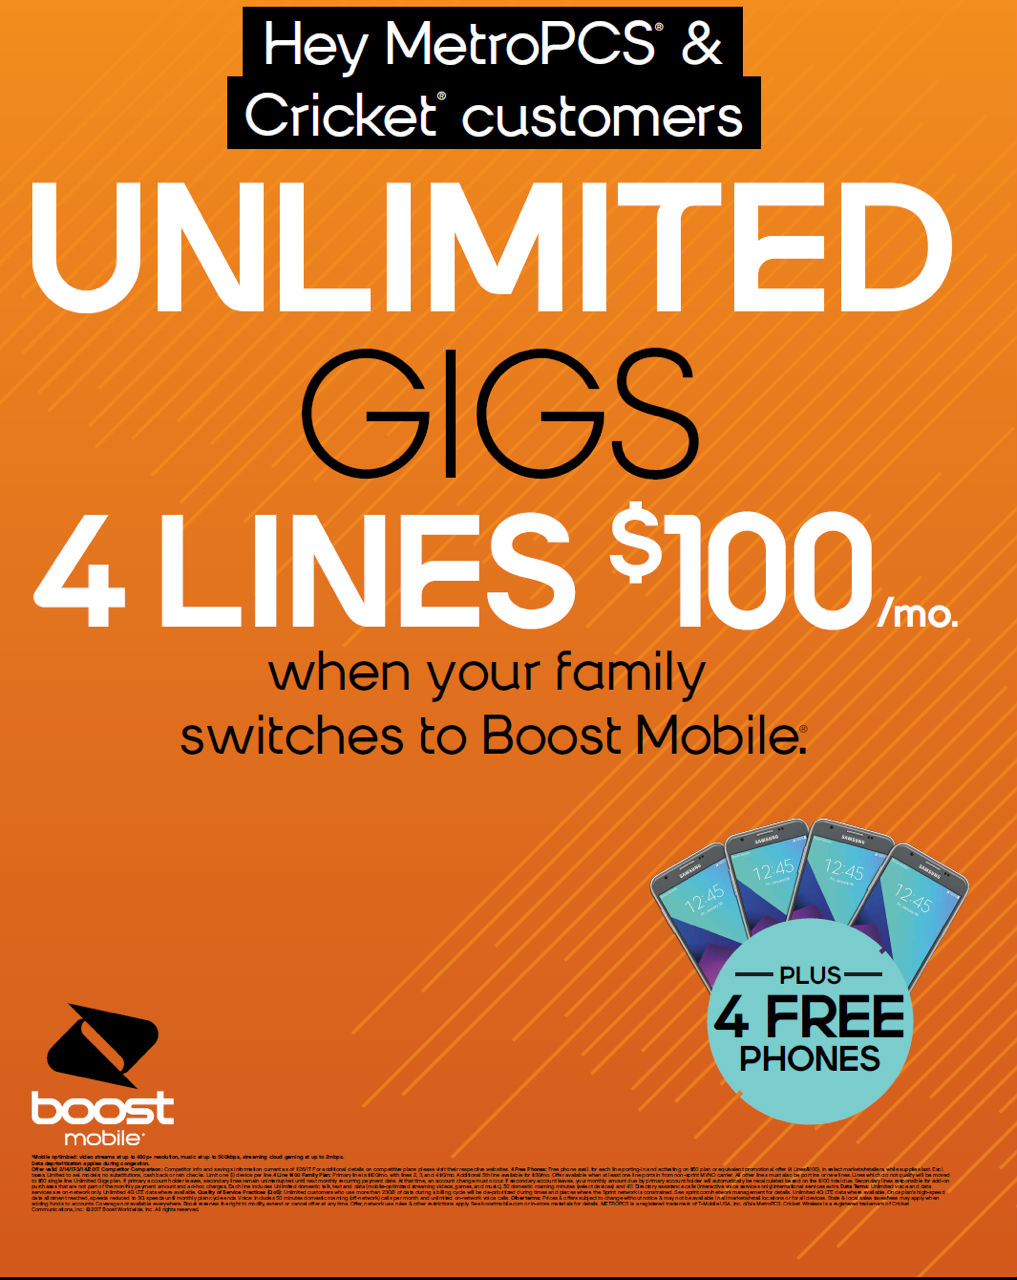 Boost Mobile Deals. While you can physically walk into a Boost Mobile store to check out phones and plans, the company provides instant savings online with free shipping, limited time promotions, and exclusive 'Online Deals' offered only through their website. Boost Mobile Review.